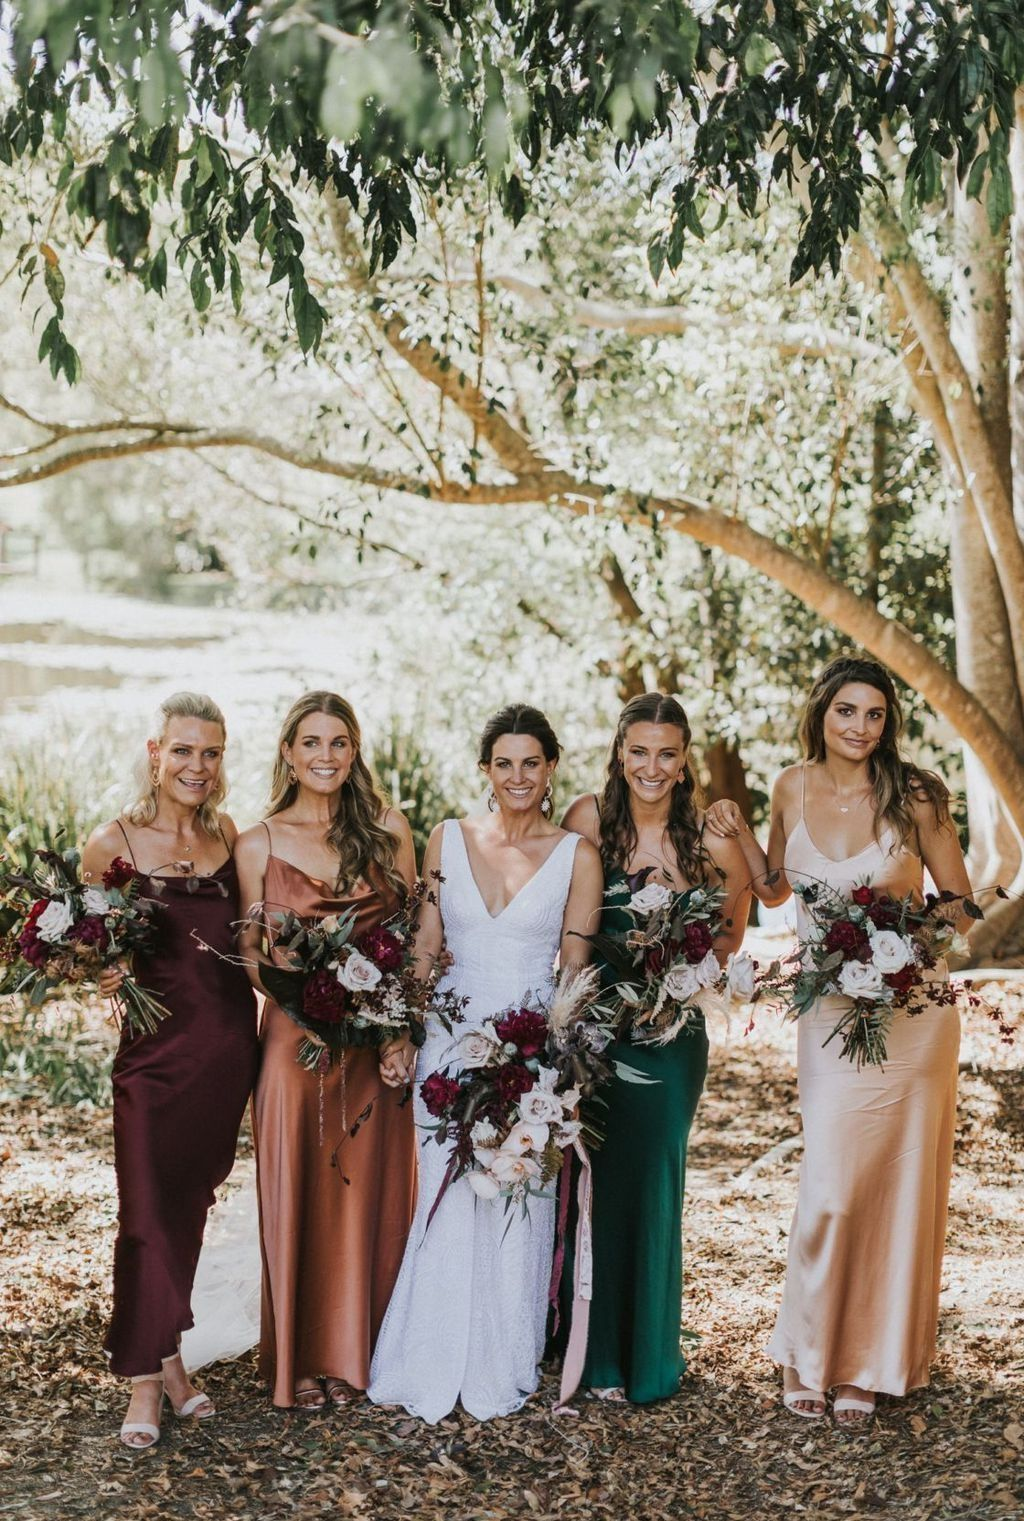 20 Mismatched Bridesmaid Dresses For 2020 In 2020 Wedding Bridesmaid Dresses Fall Bridesmaid Dresses Mismatched Bridesmaid Dresses